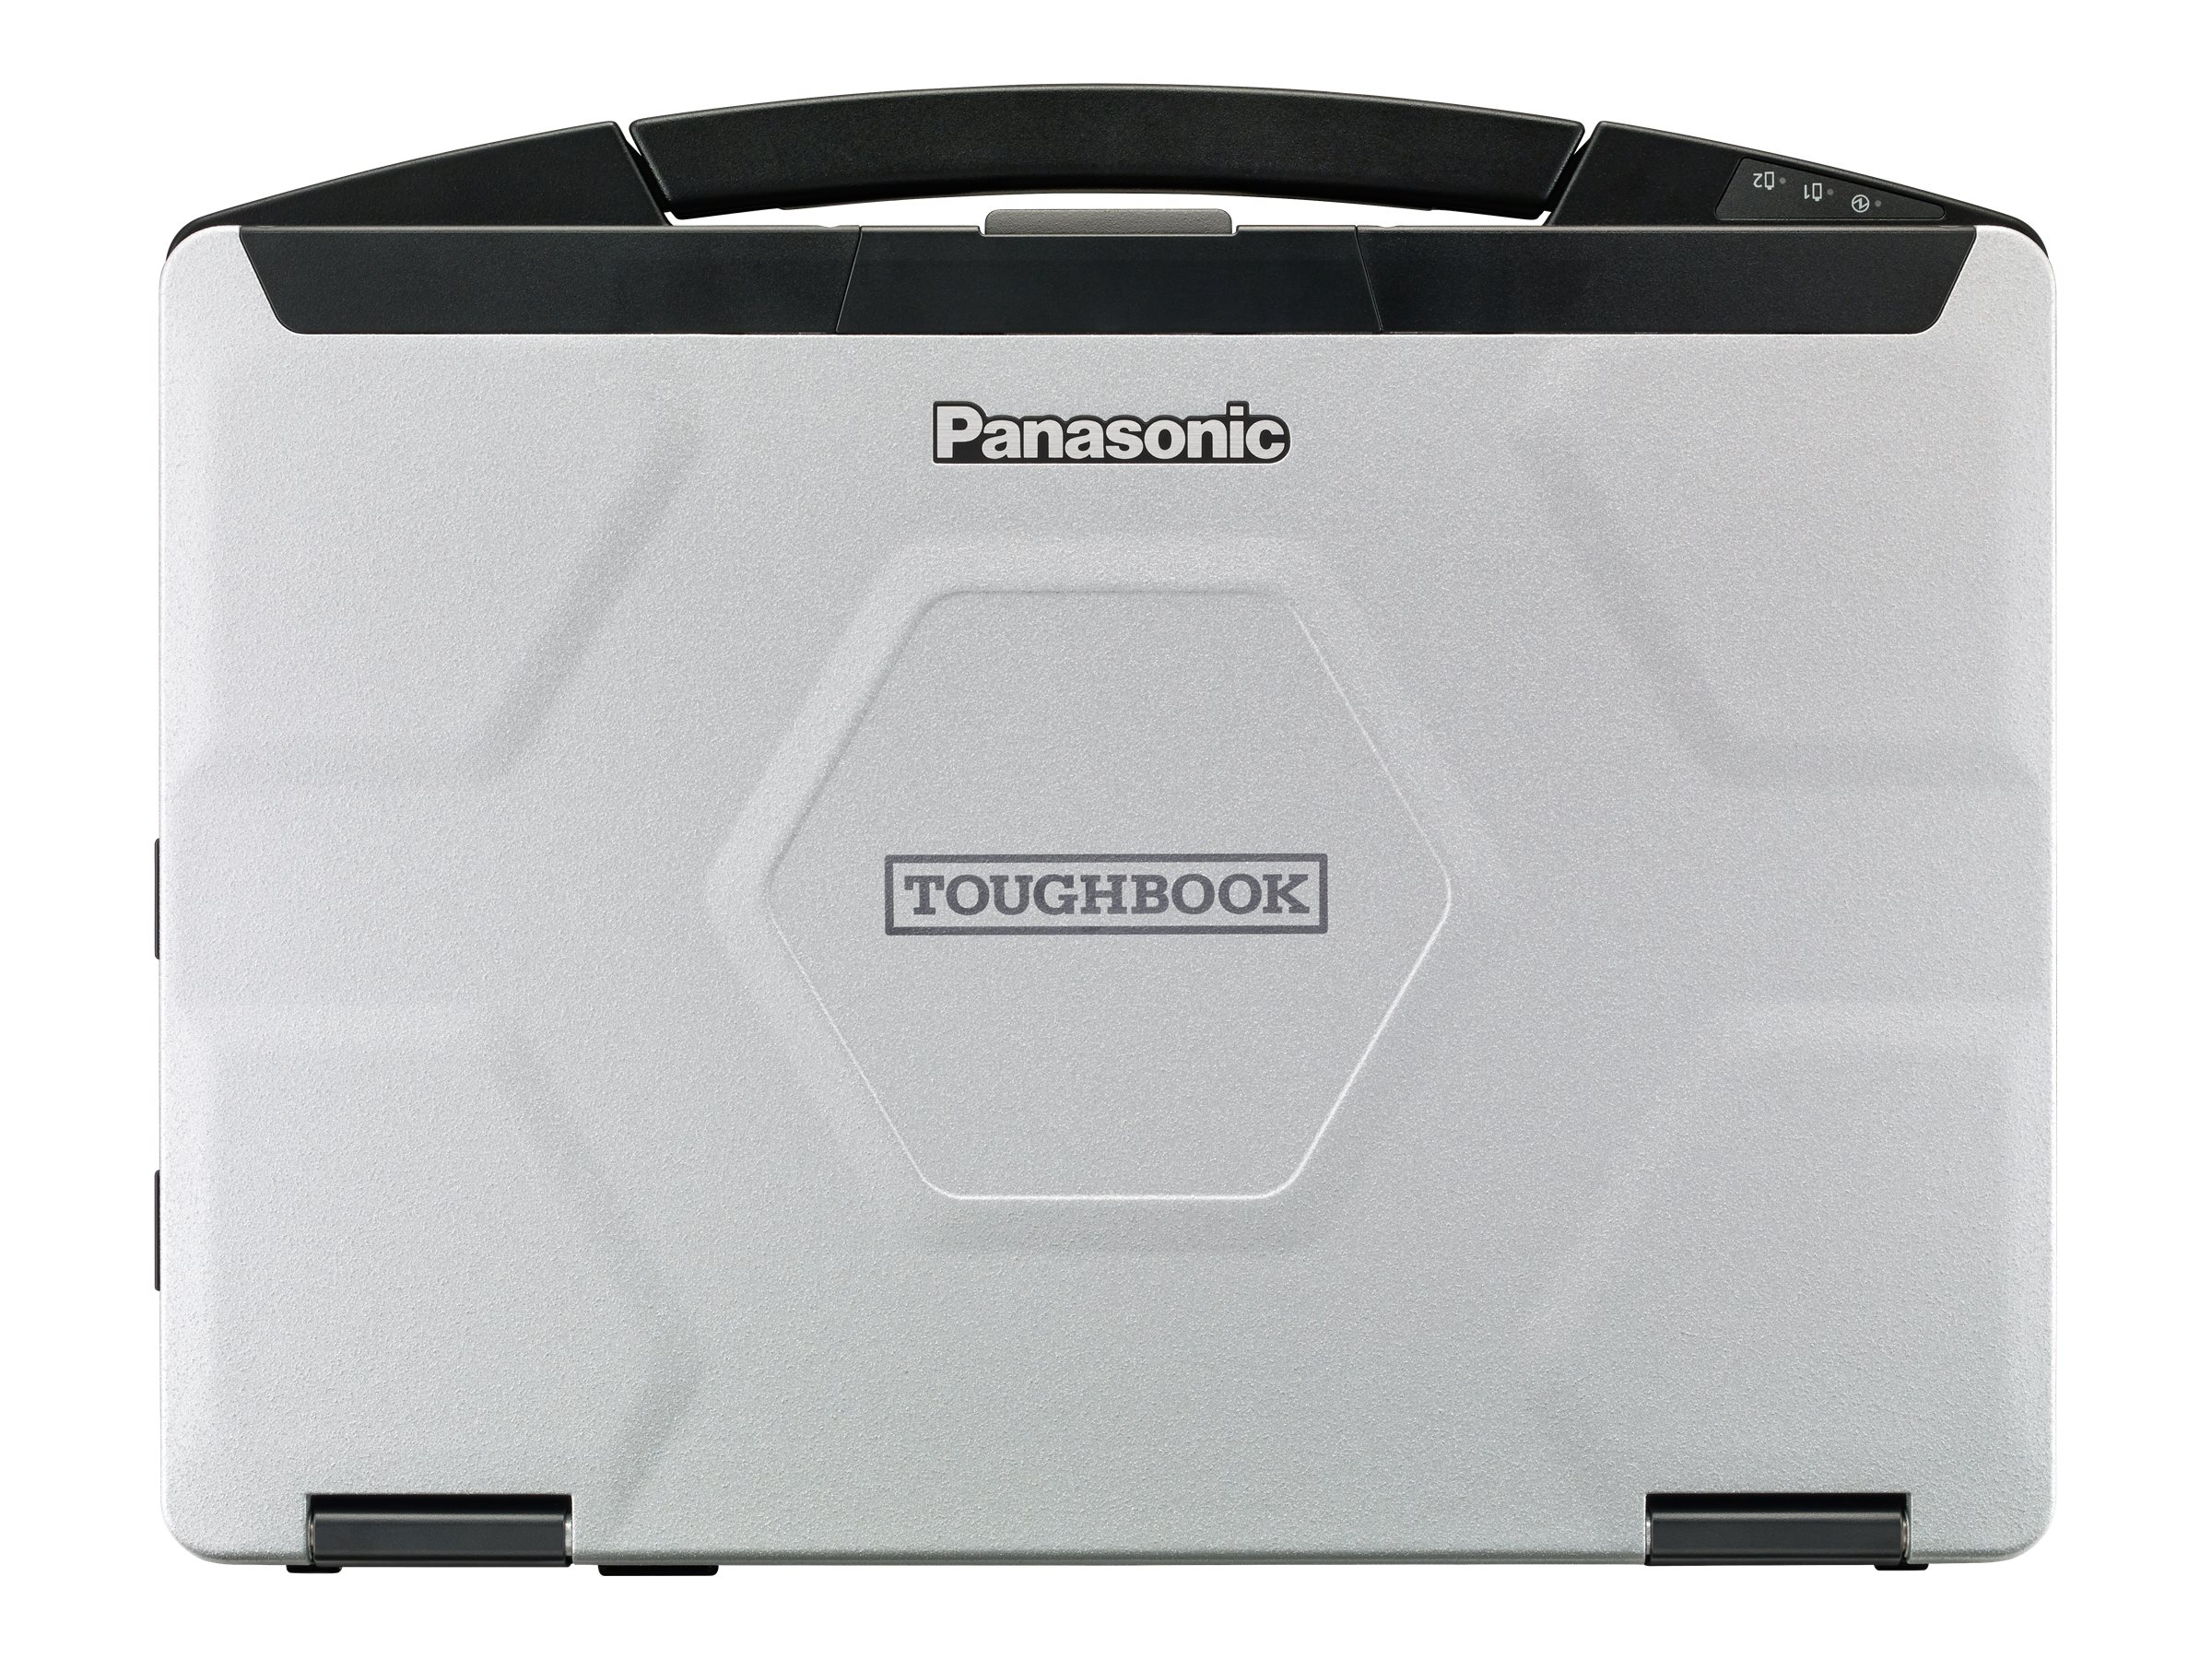 Panasonic Toughbook 54 2.4GHz Core i5 14in display, CF-54F4442KM